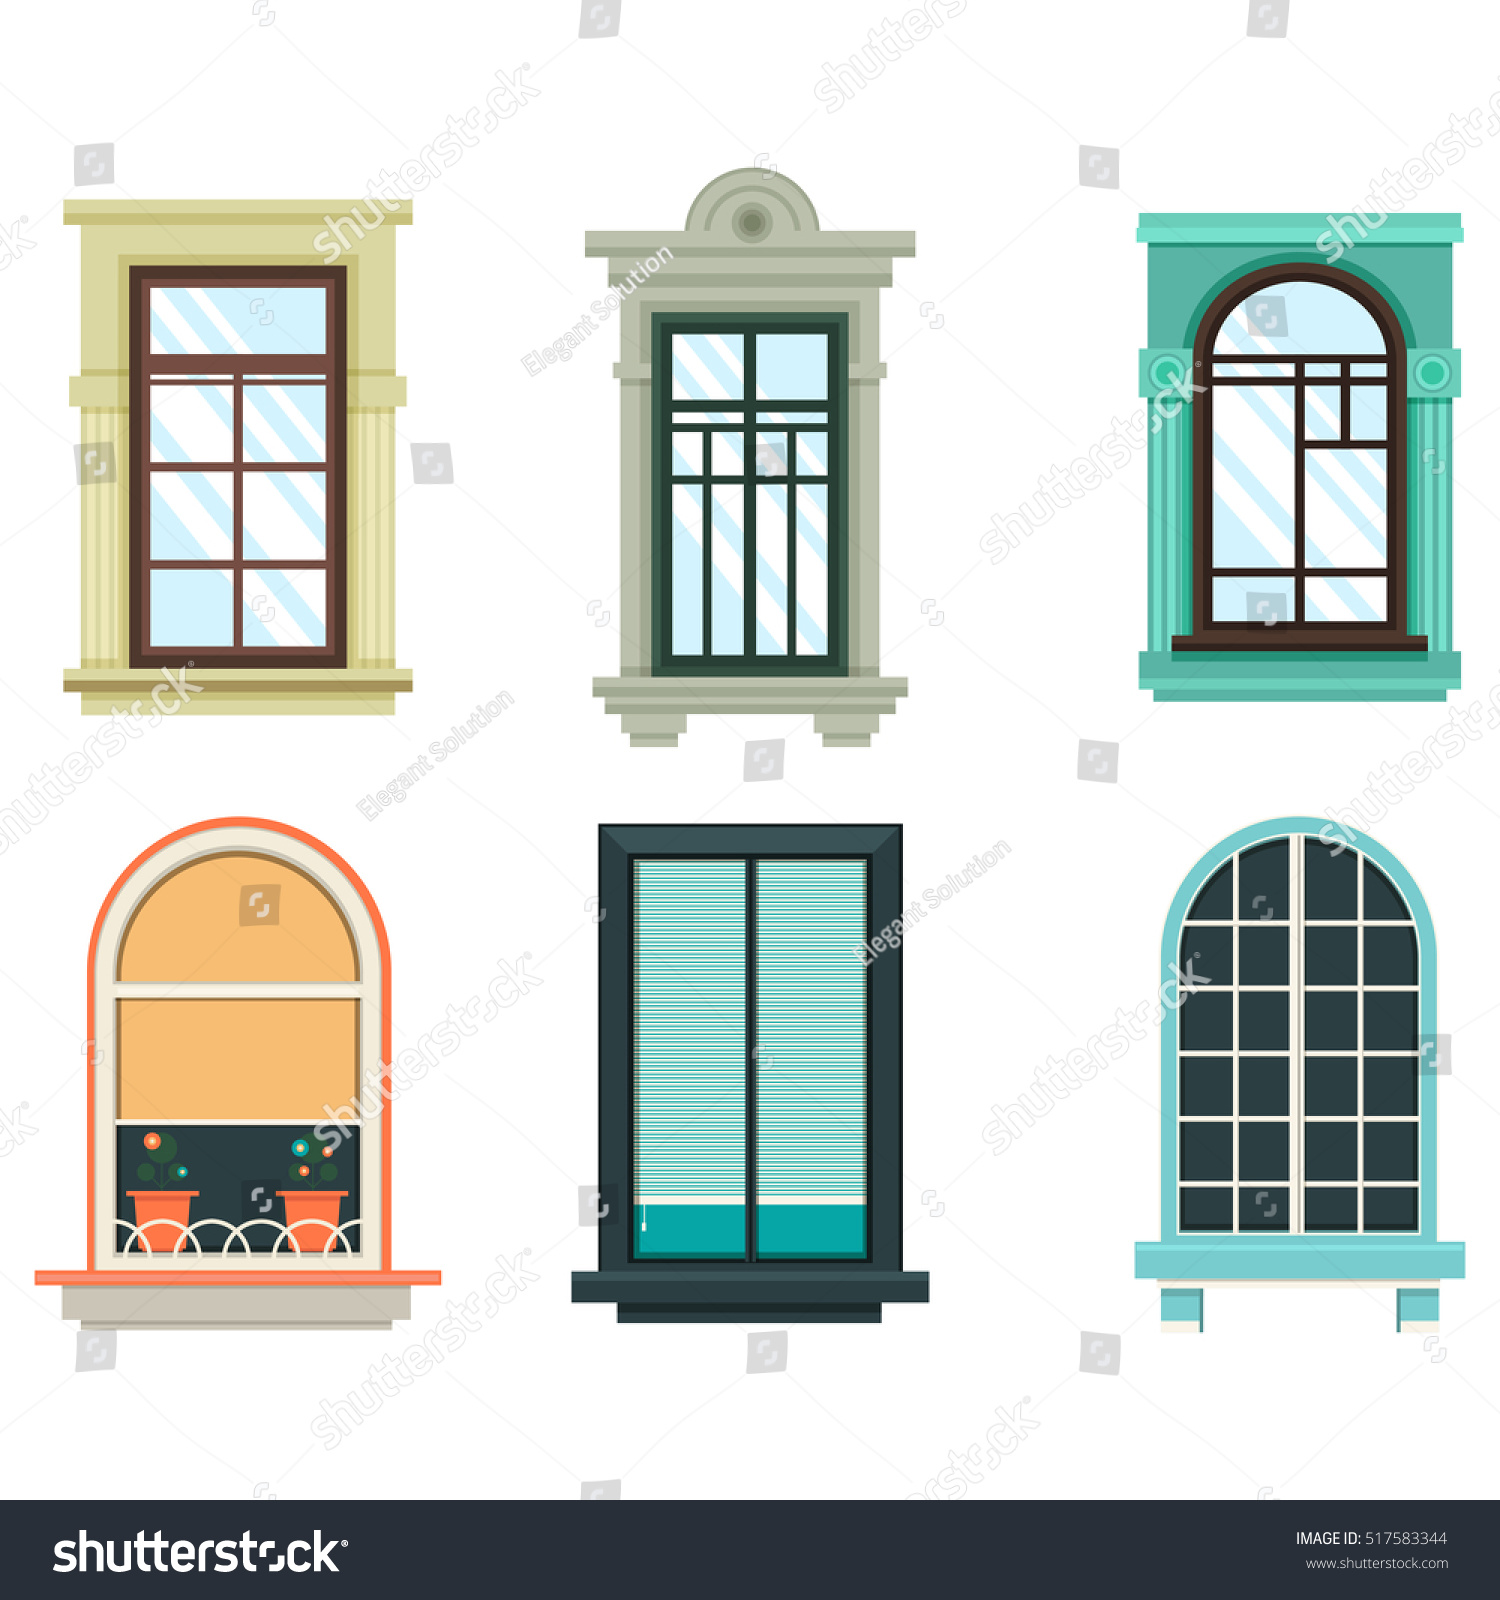 Vintage wooden window frame with curtain and flowerpot stock - Wood Windows Frames Isolated Set Exterior View House Or Home Window With Shutter And Flower